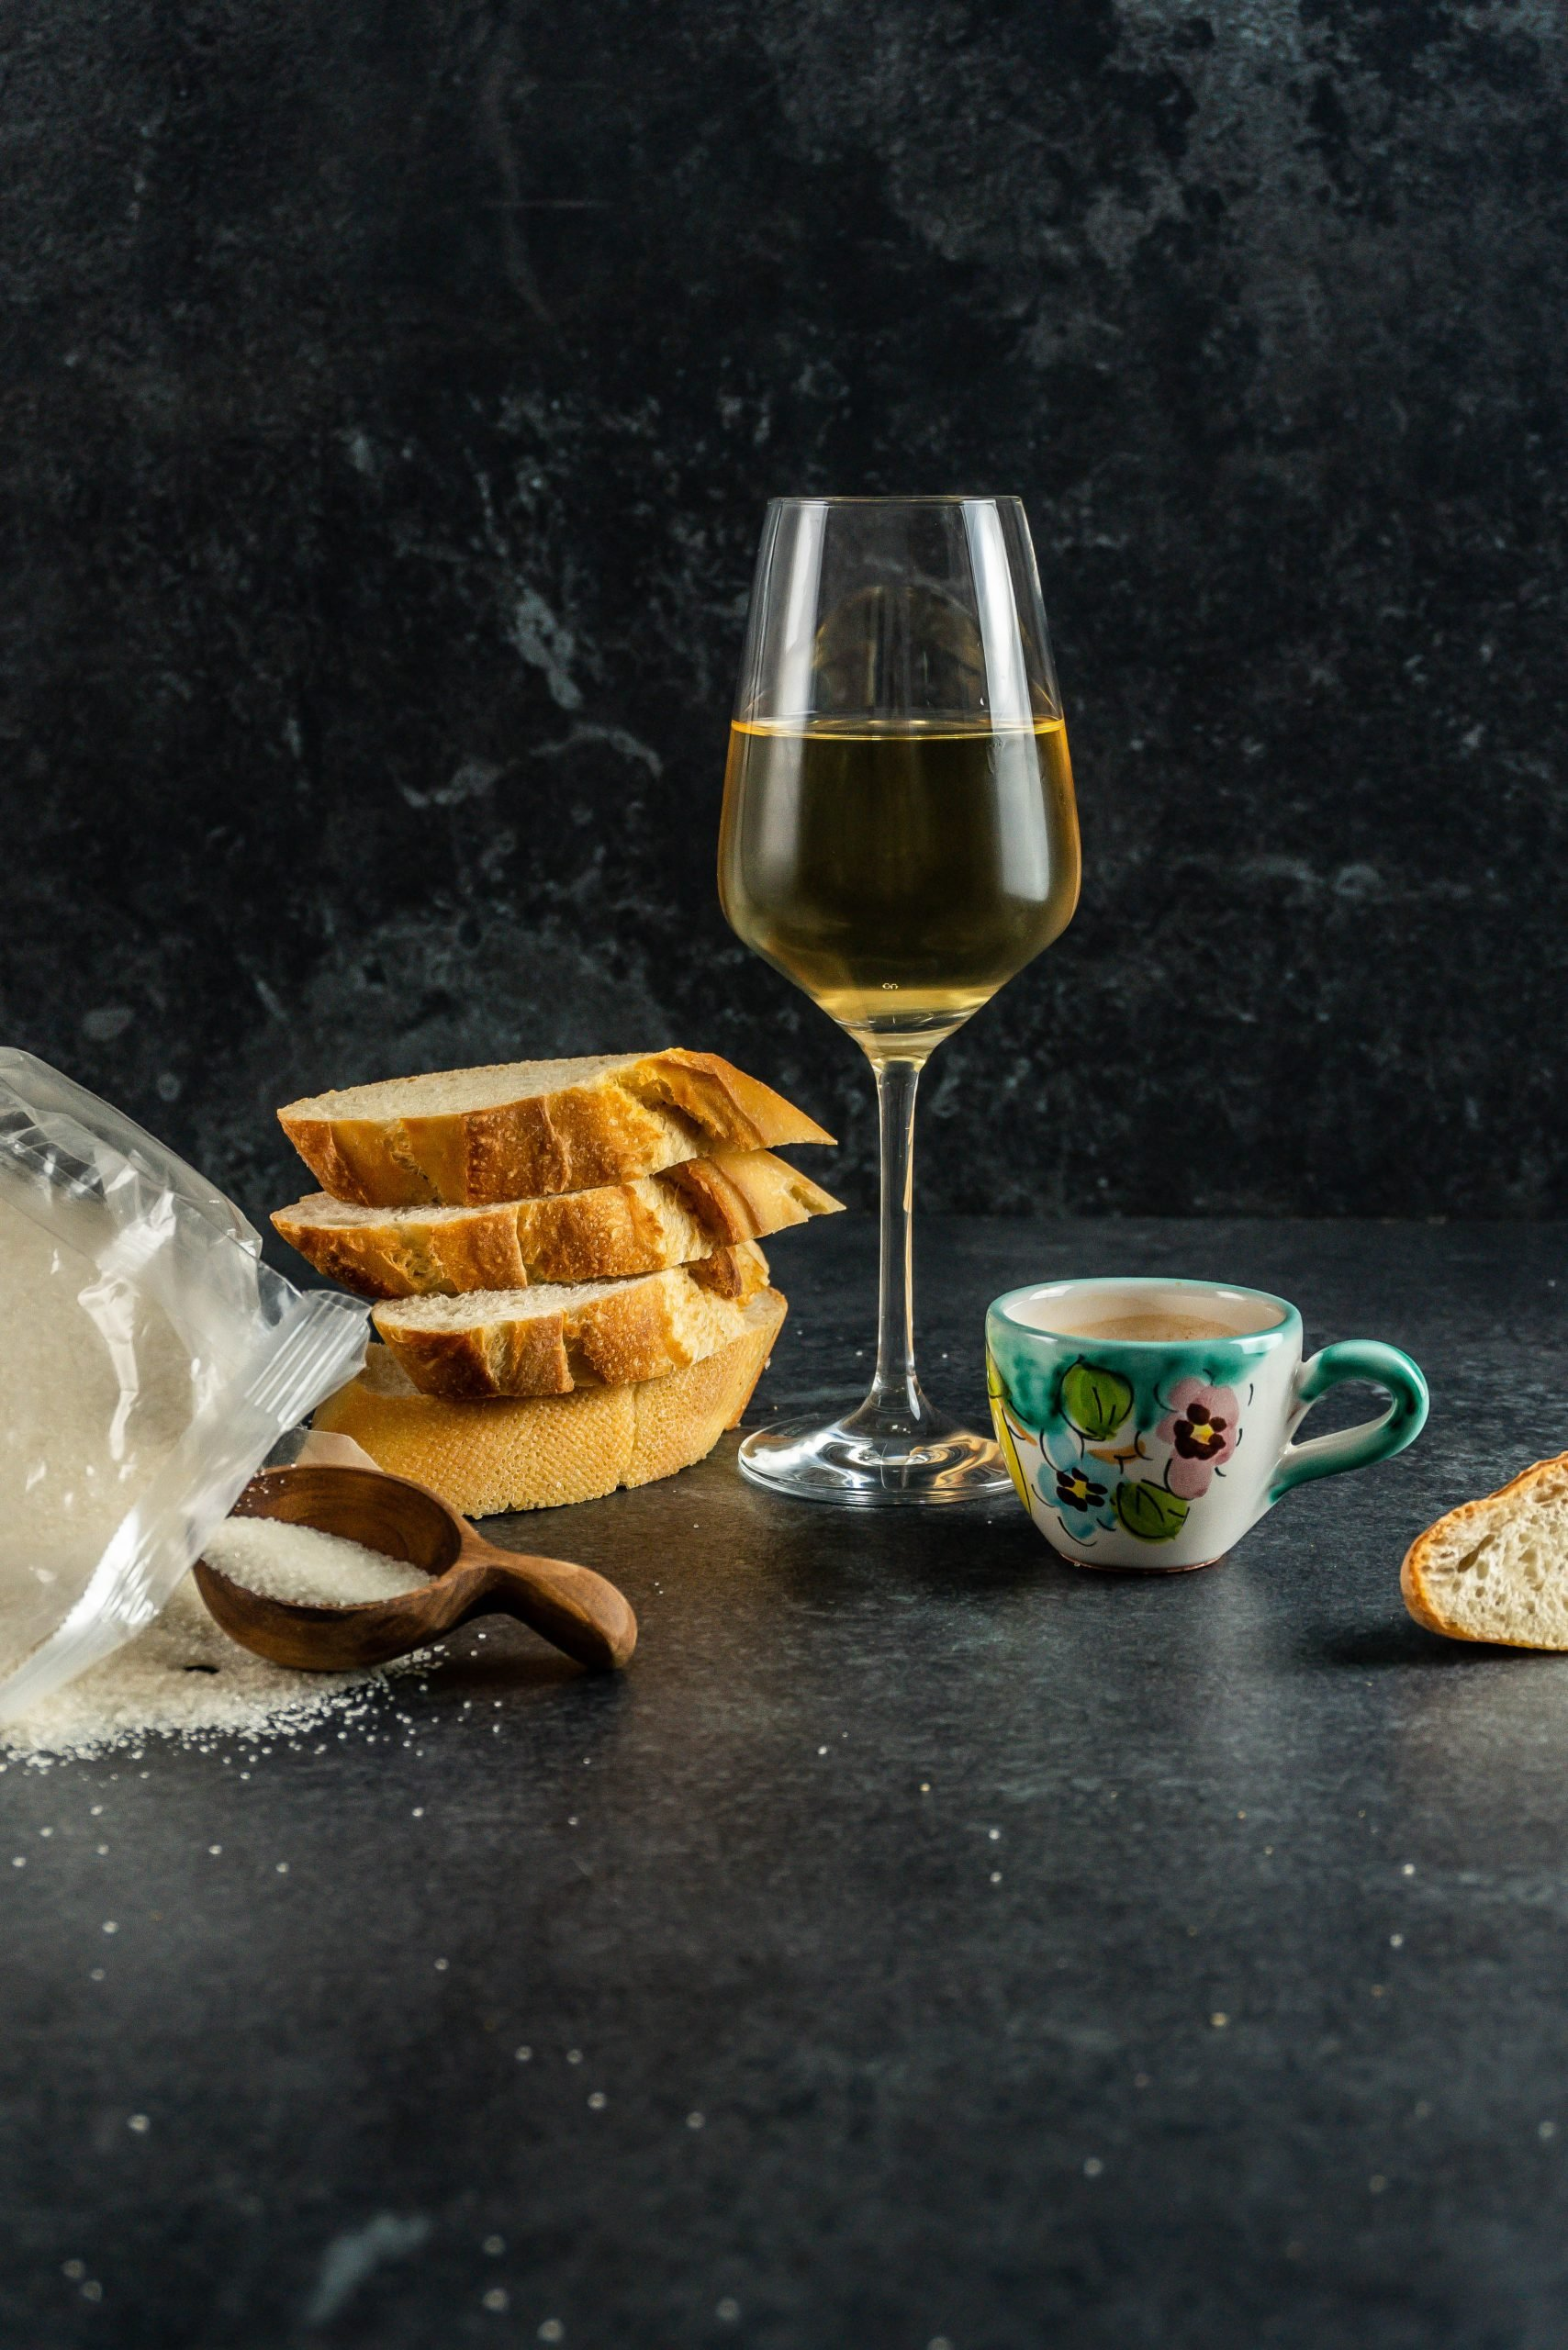 Sugar, white brad, alcohol, and coffee photographed together